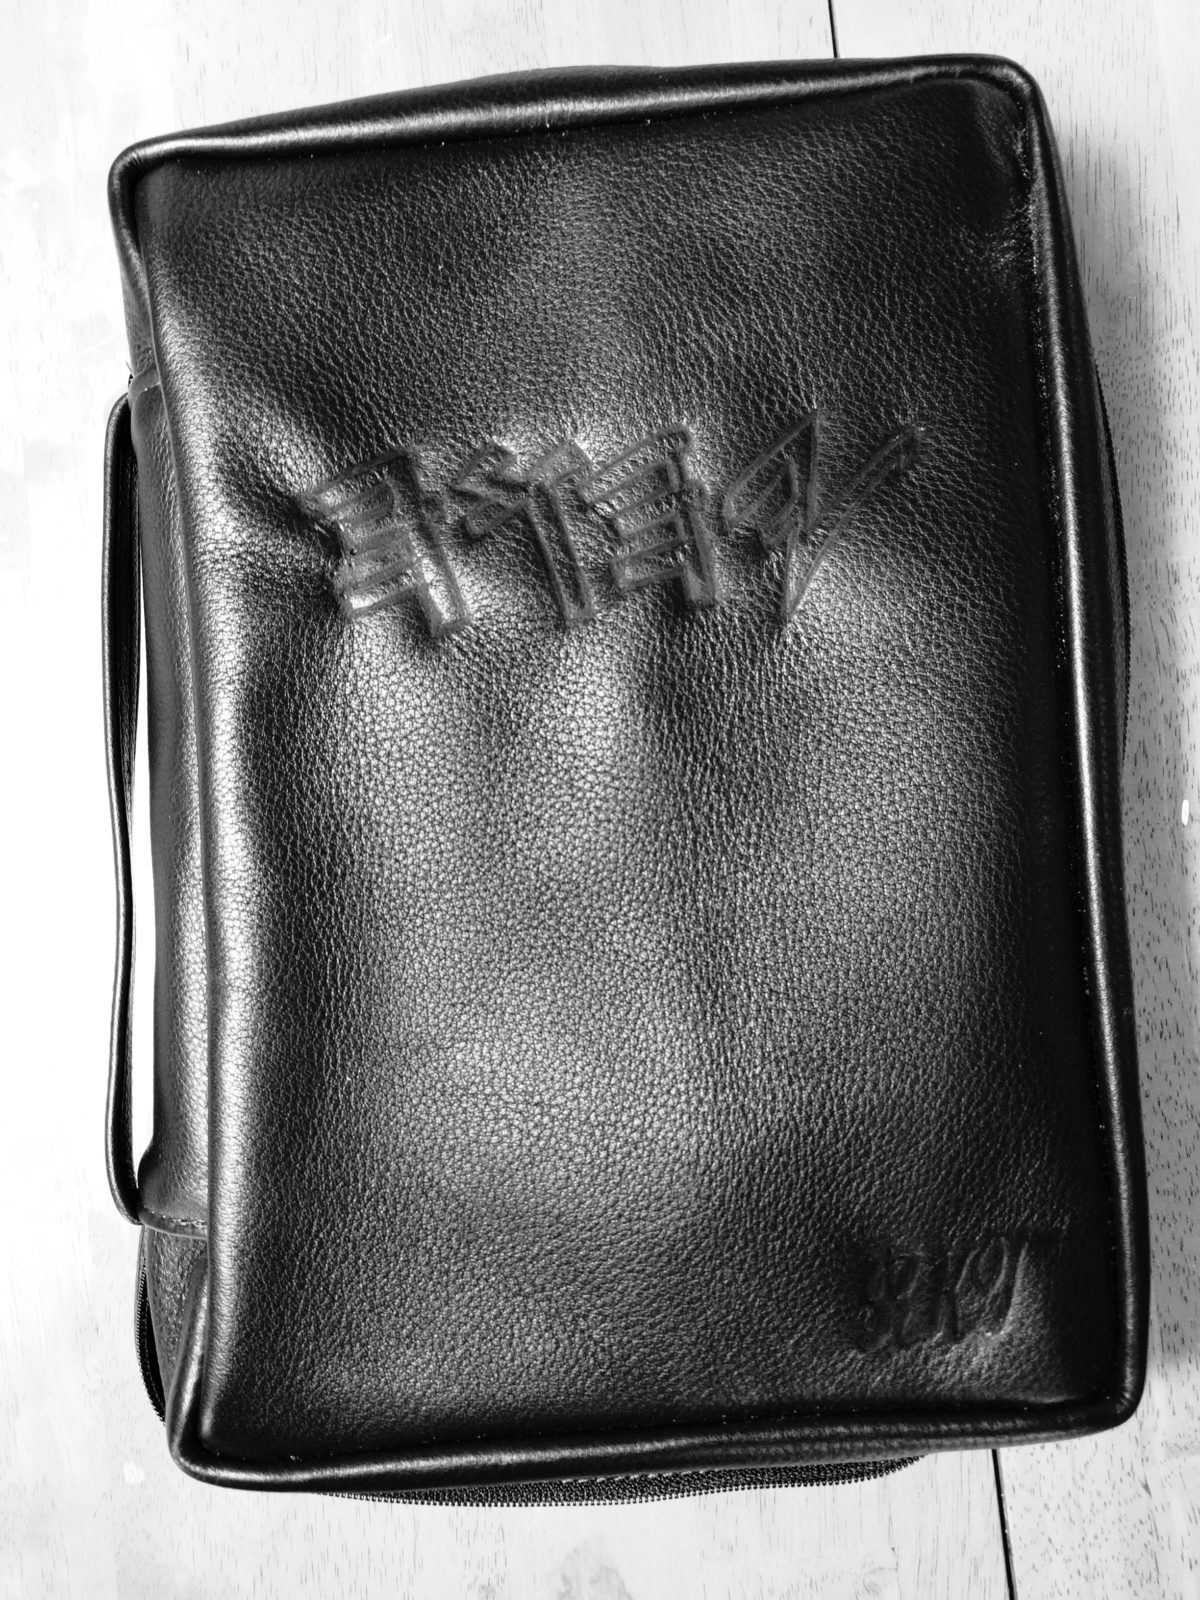 Leather Debossing a Special Name on a Bible Cover